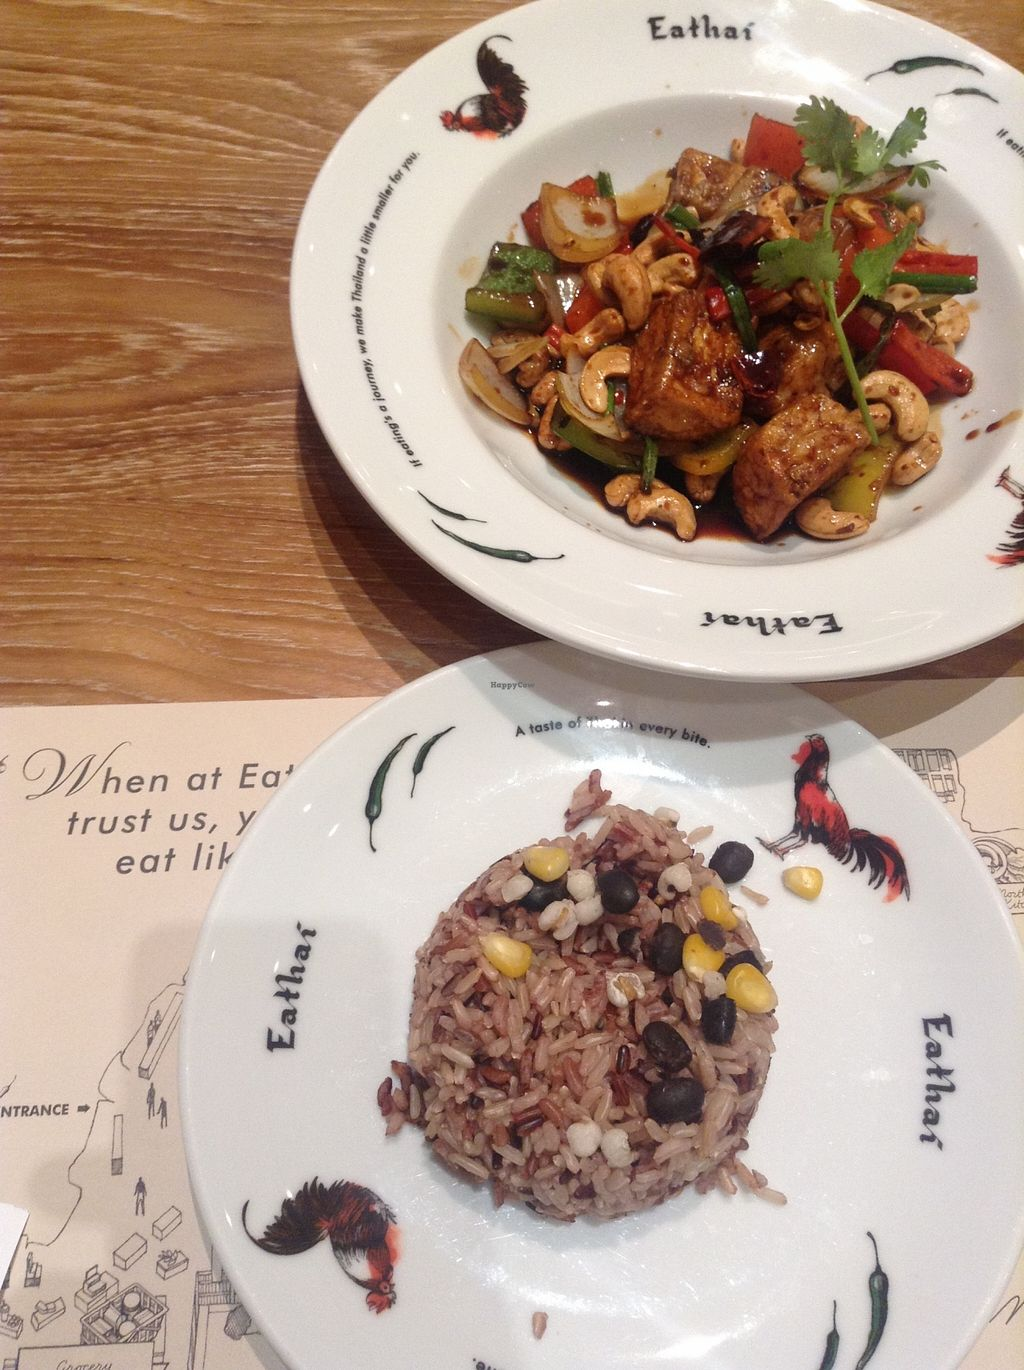 """Photo of Khun Churn - Eathai  by <a href=""""/members/profile/YozzyOti"""">YozzyOti</a> <br/>brown rice and fried vegetable with cashew nuts <br/> September 24, 2015  - <a href='/contact/abuse/image/52986/118966'>Report</a>"""